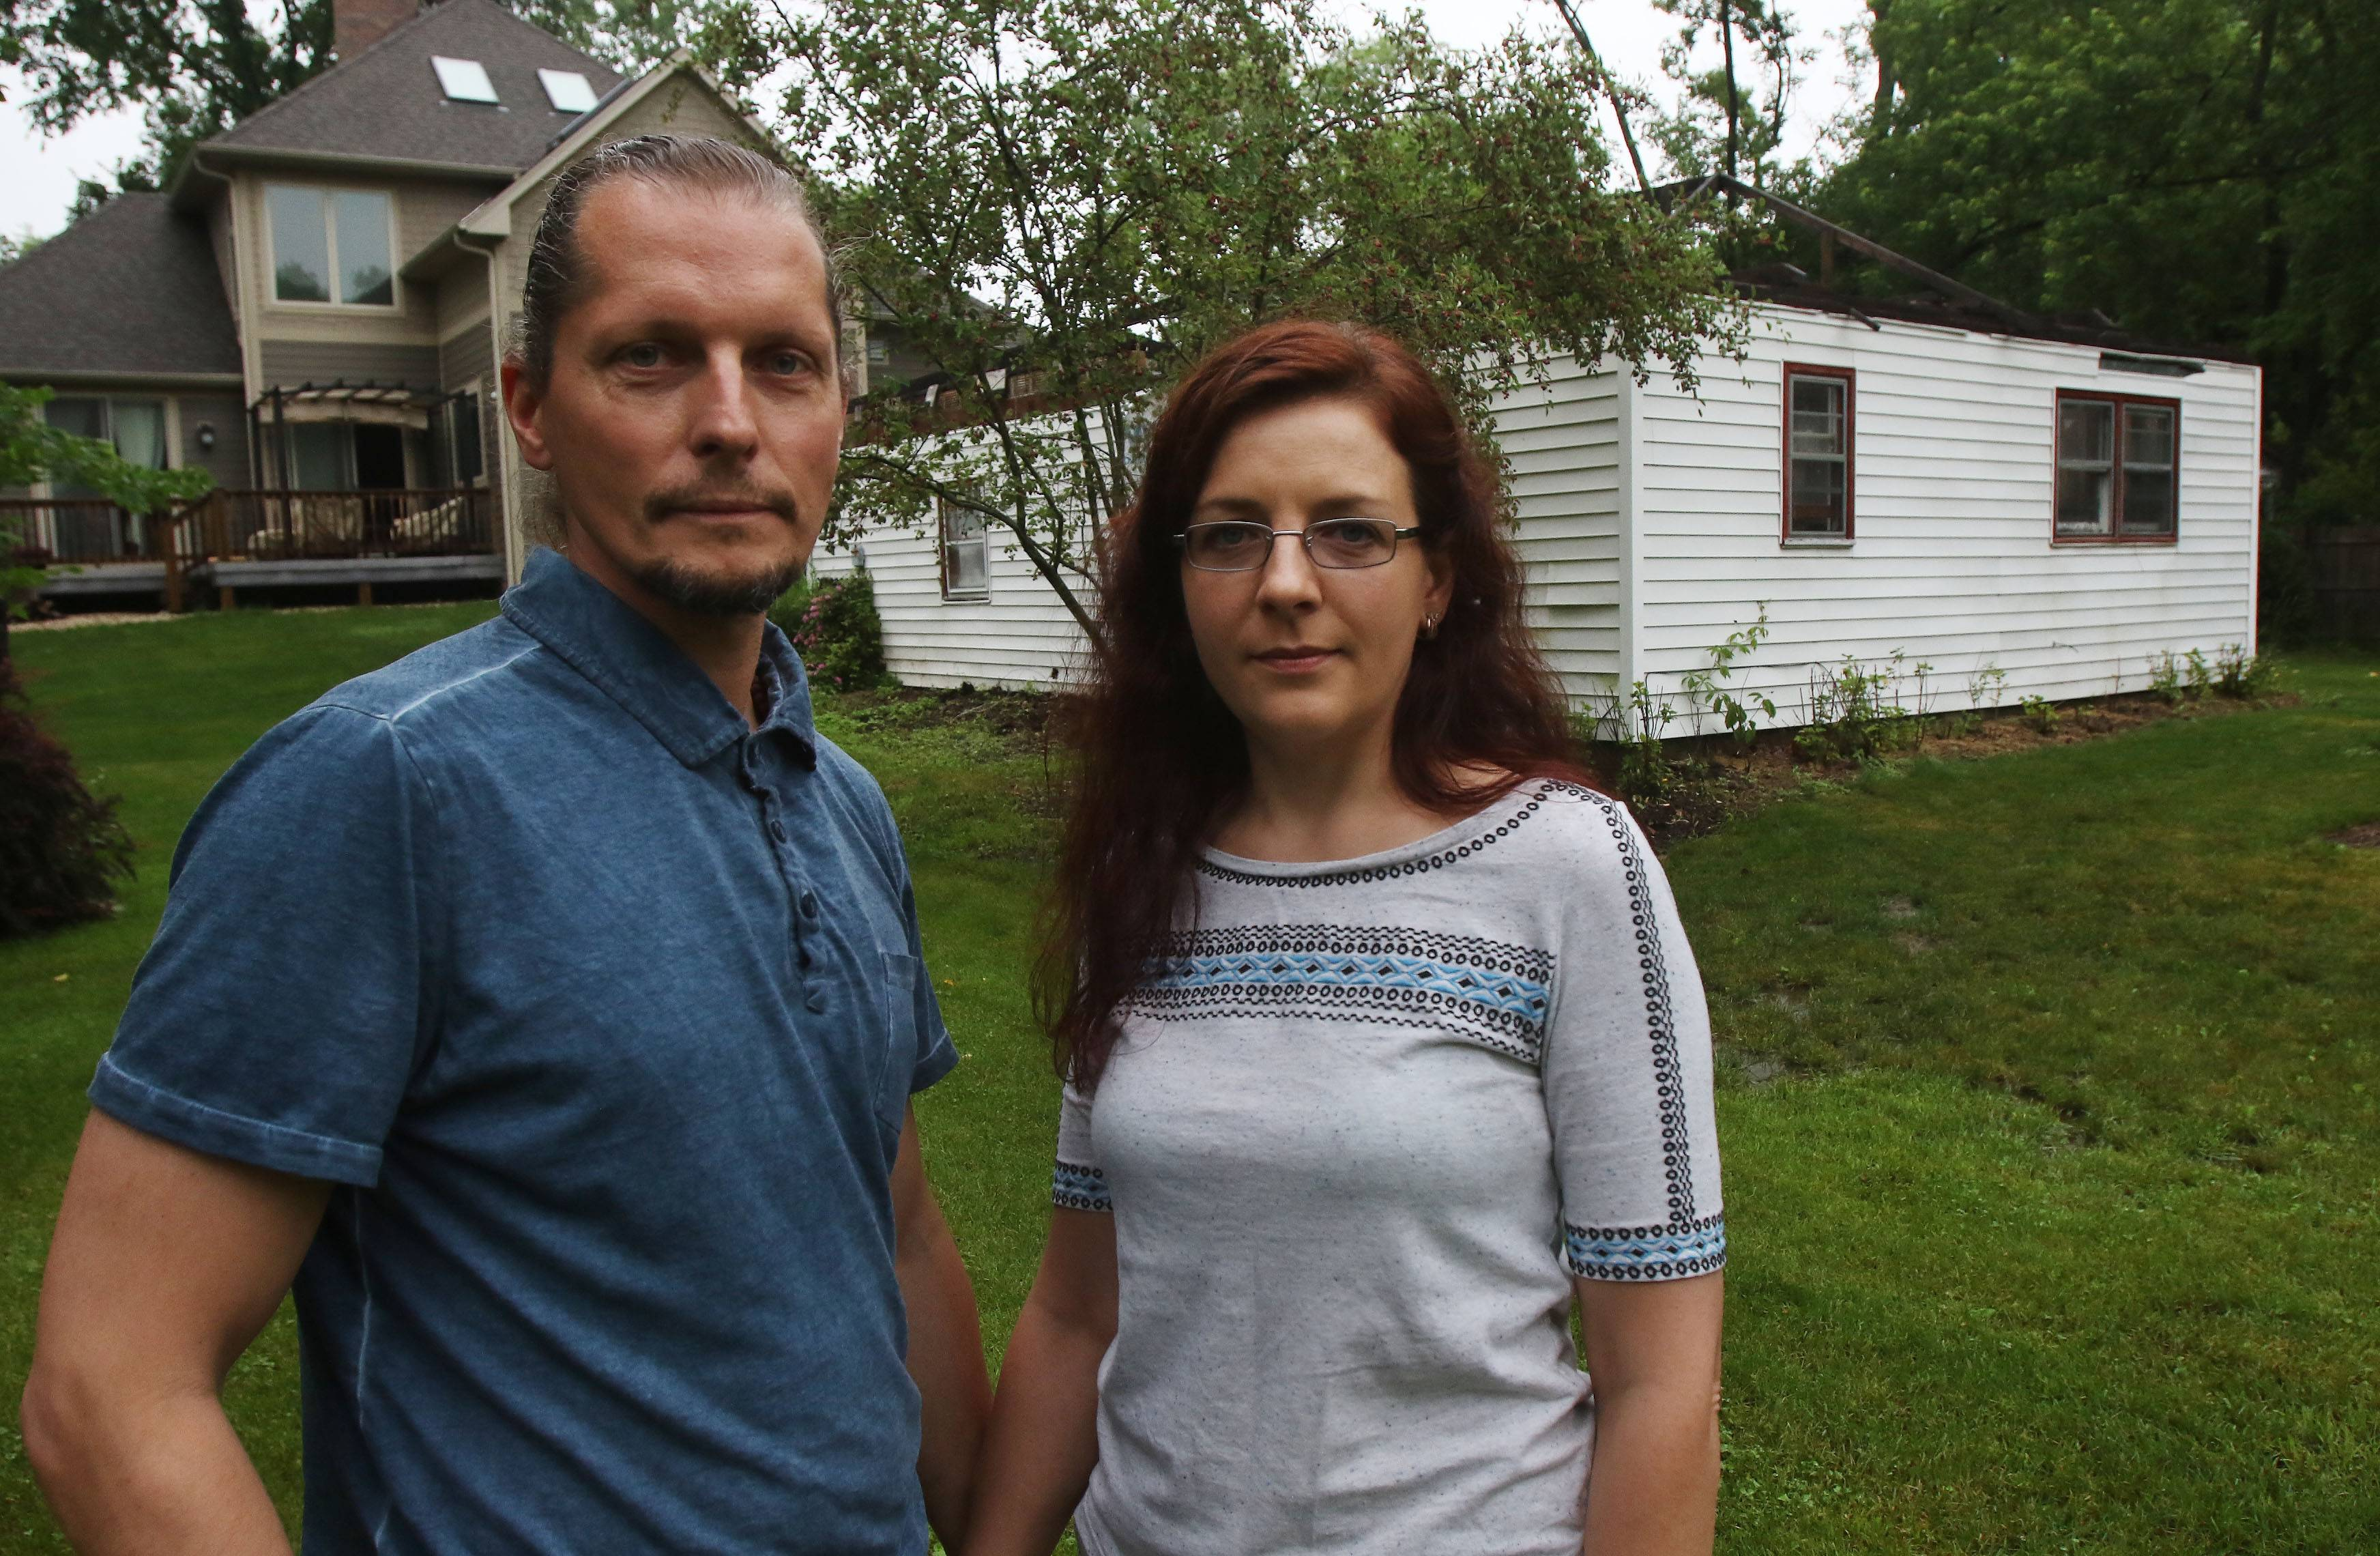 Work without permit may mean demolition for building in Palatine couple's yard